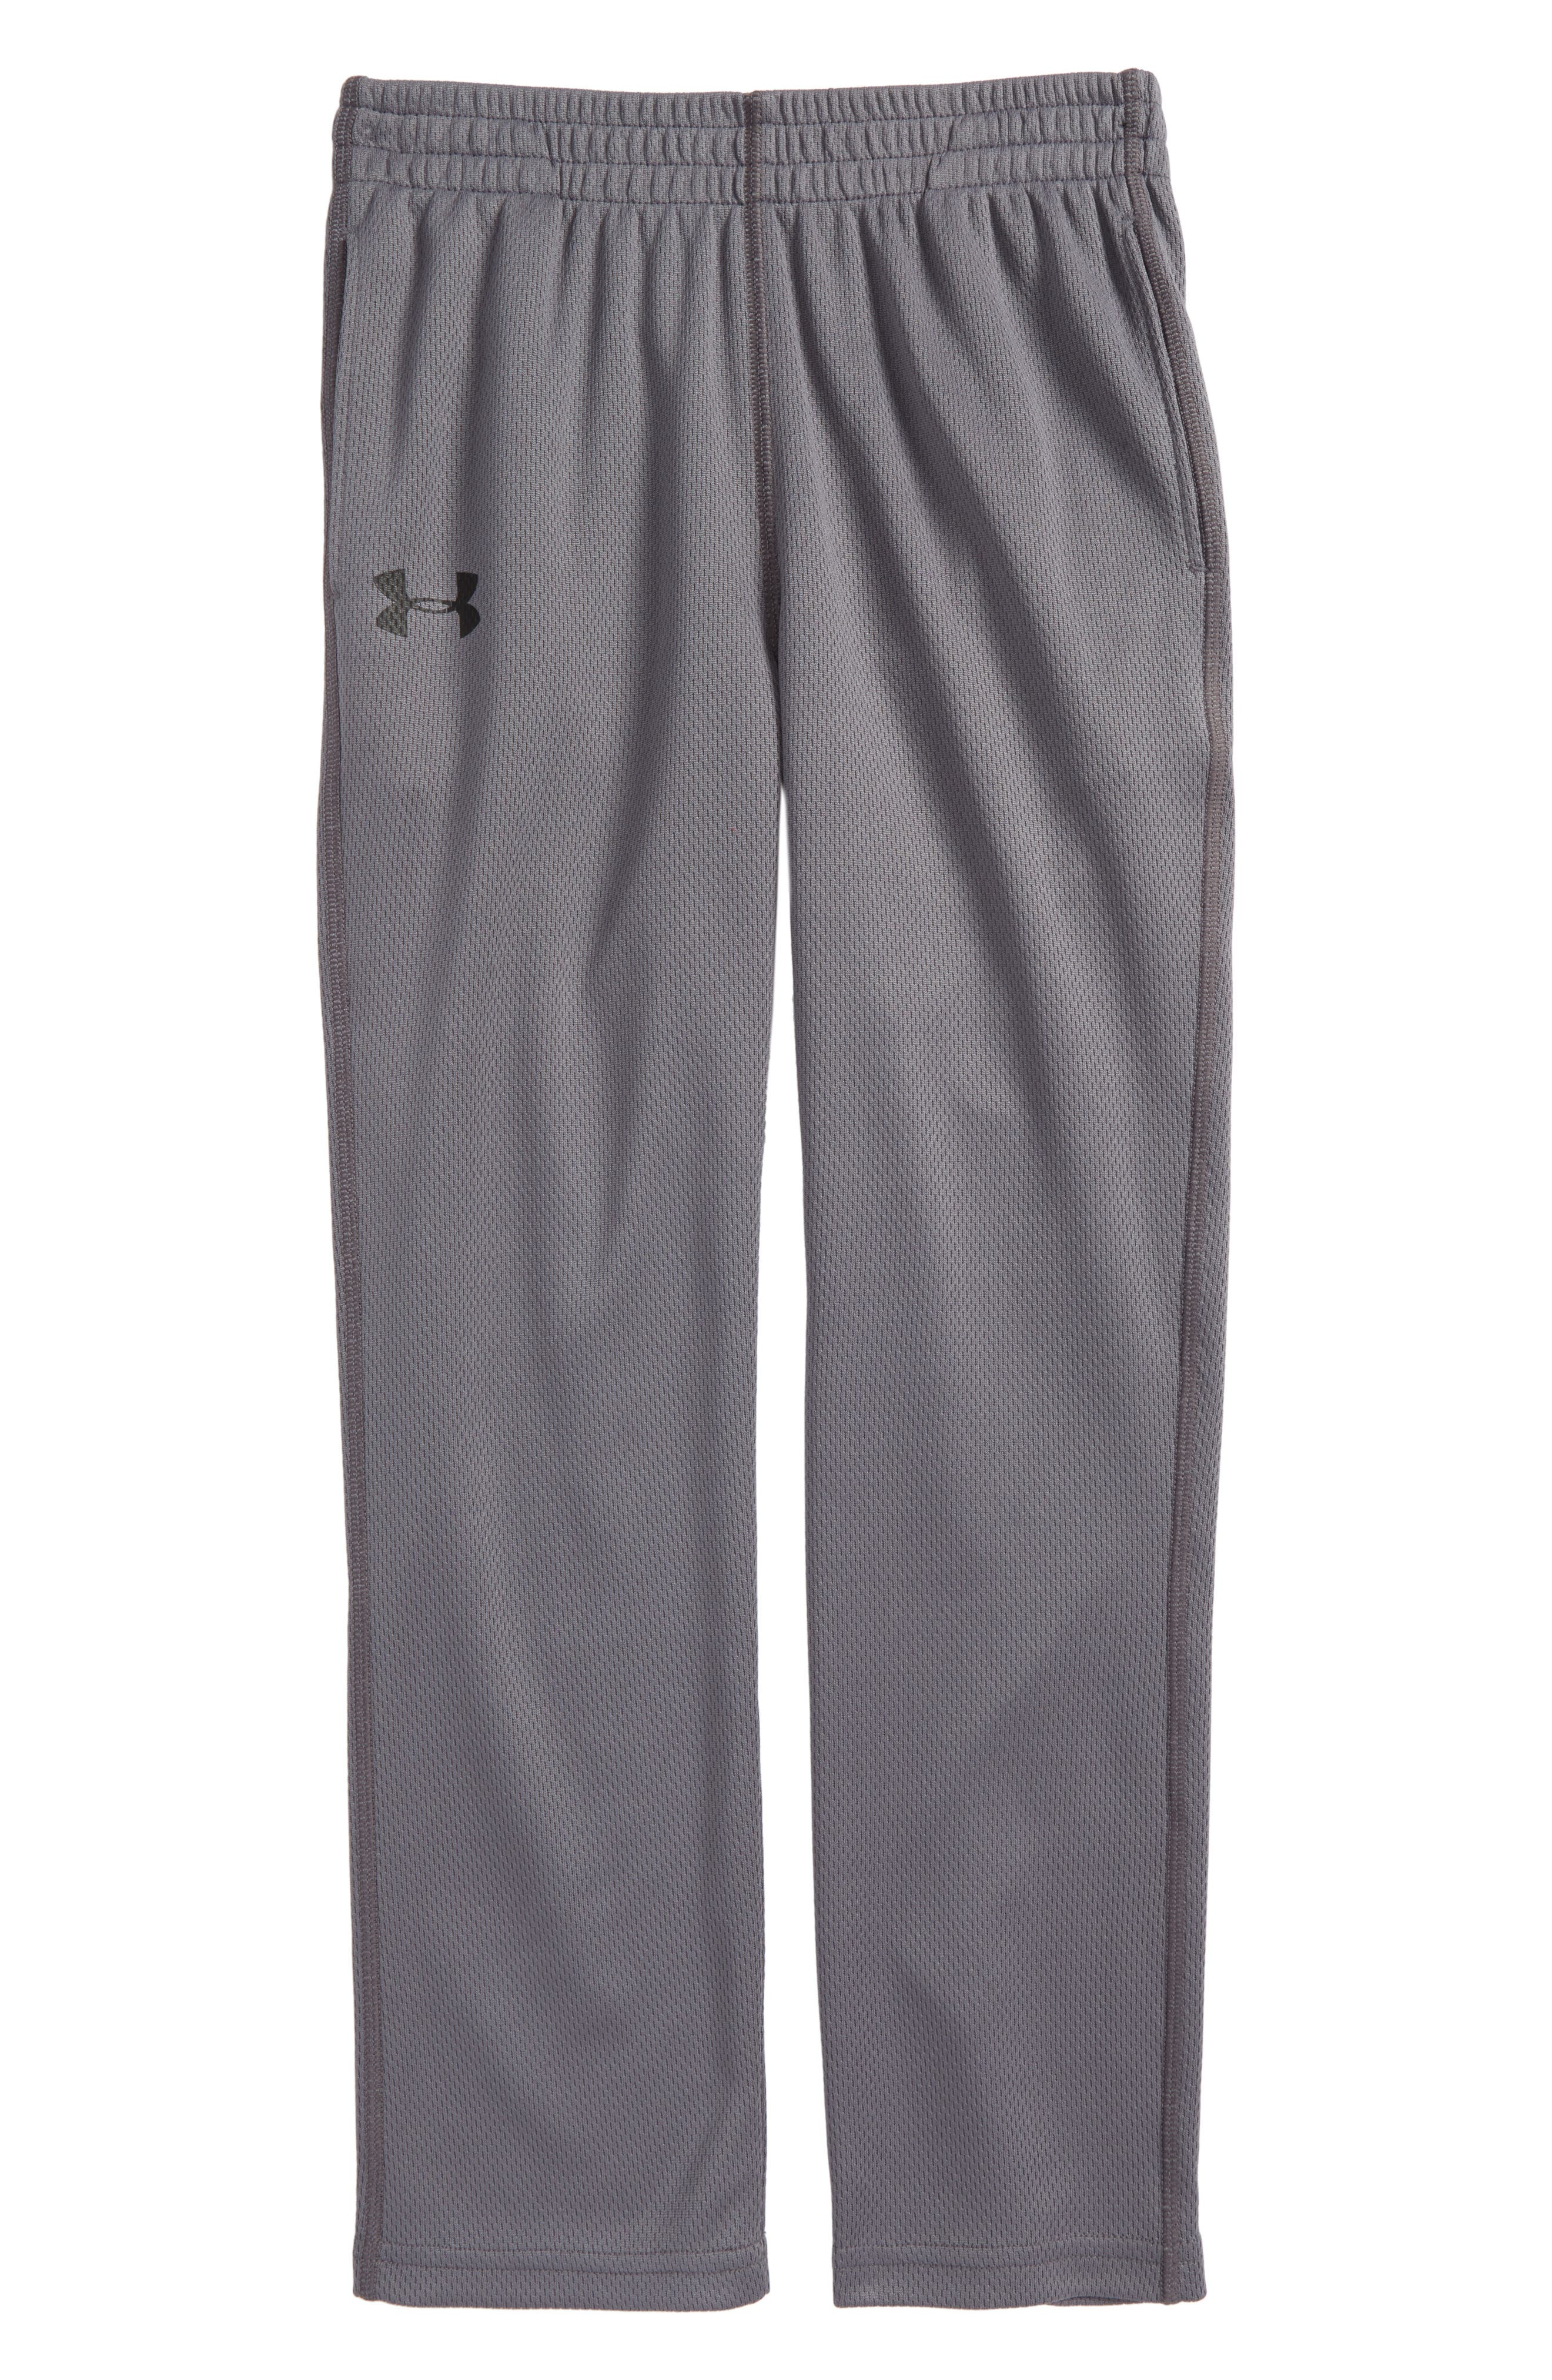 Alternate Image 1 Selected - Under Armour Mesh Pants (Toddler Boys & Little Boys)